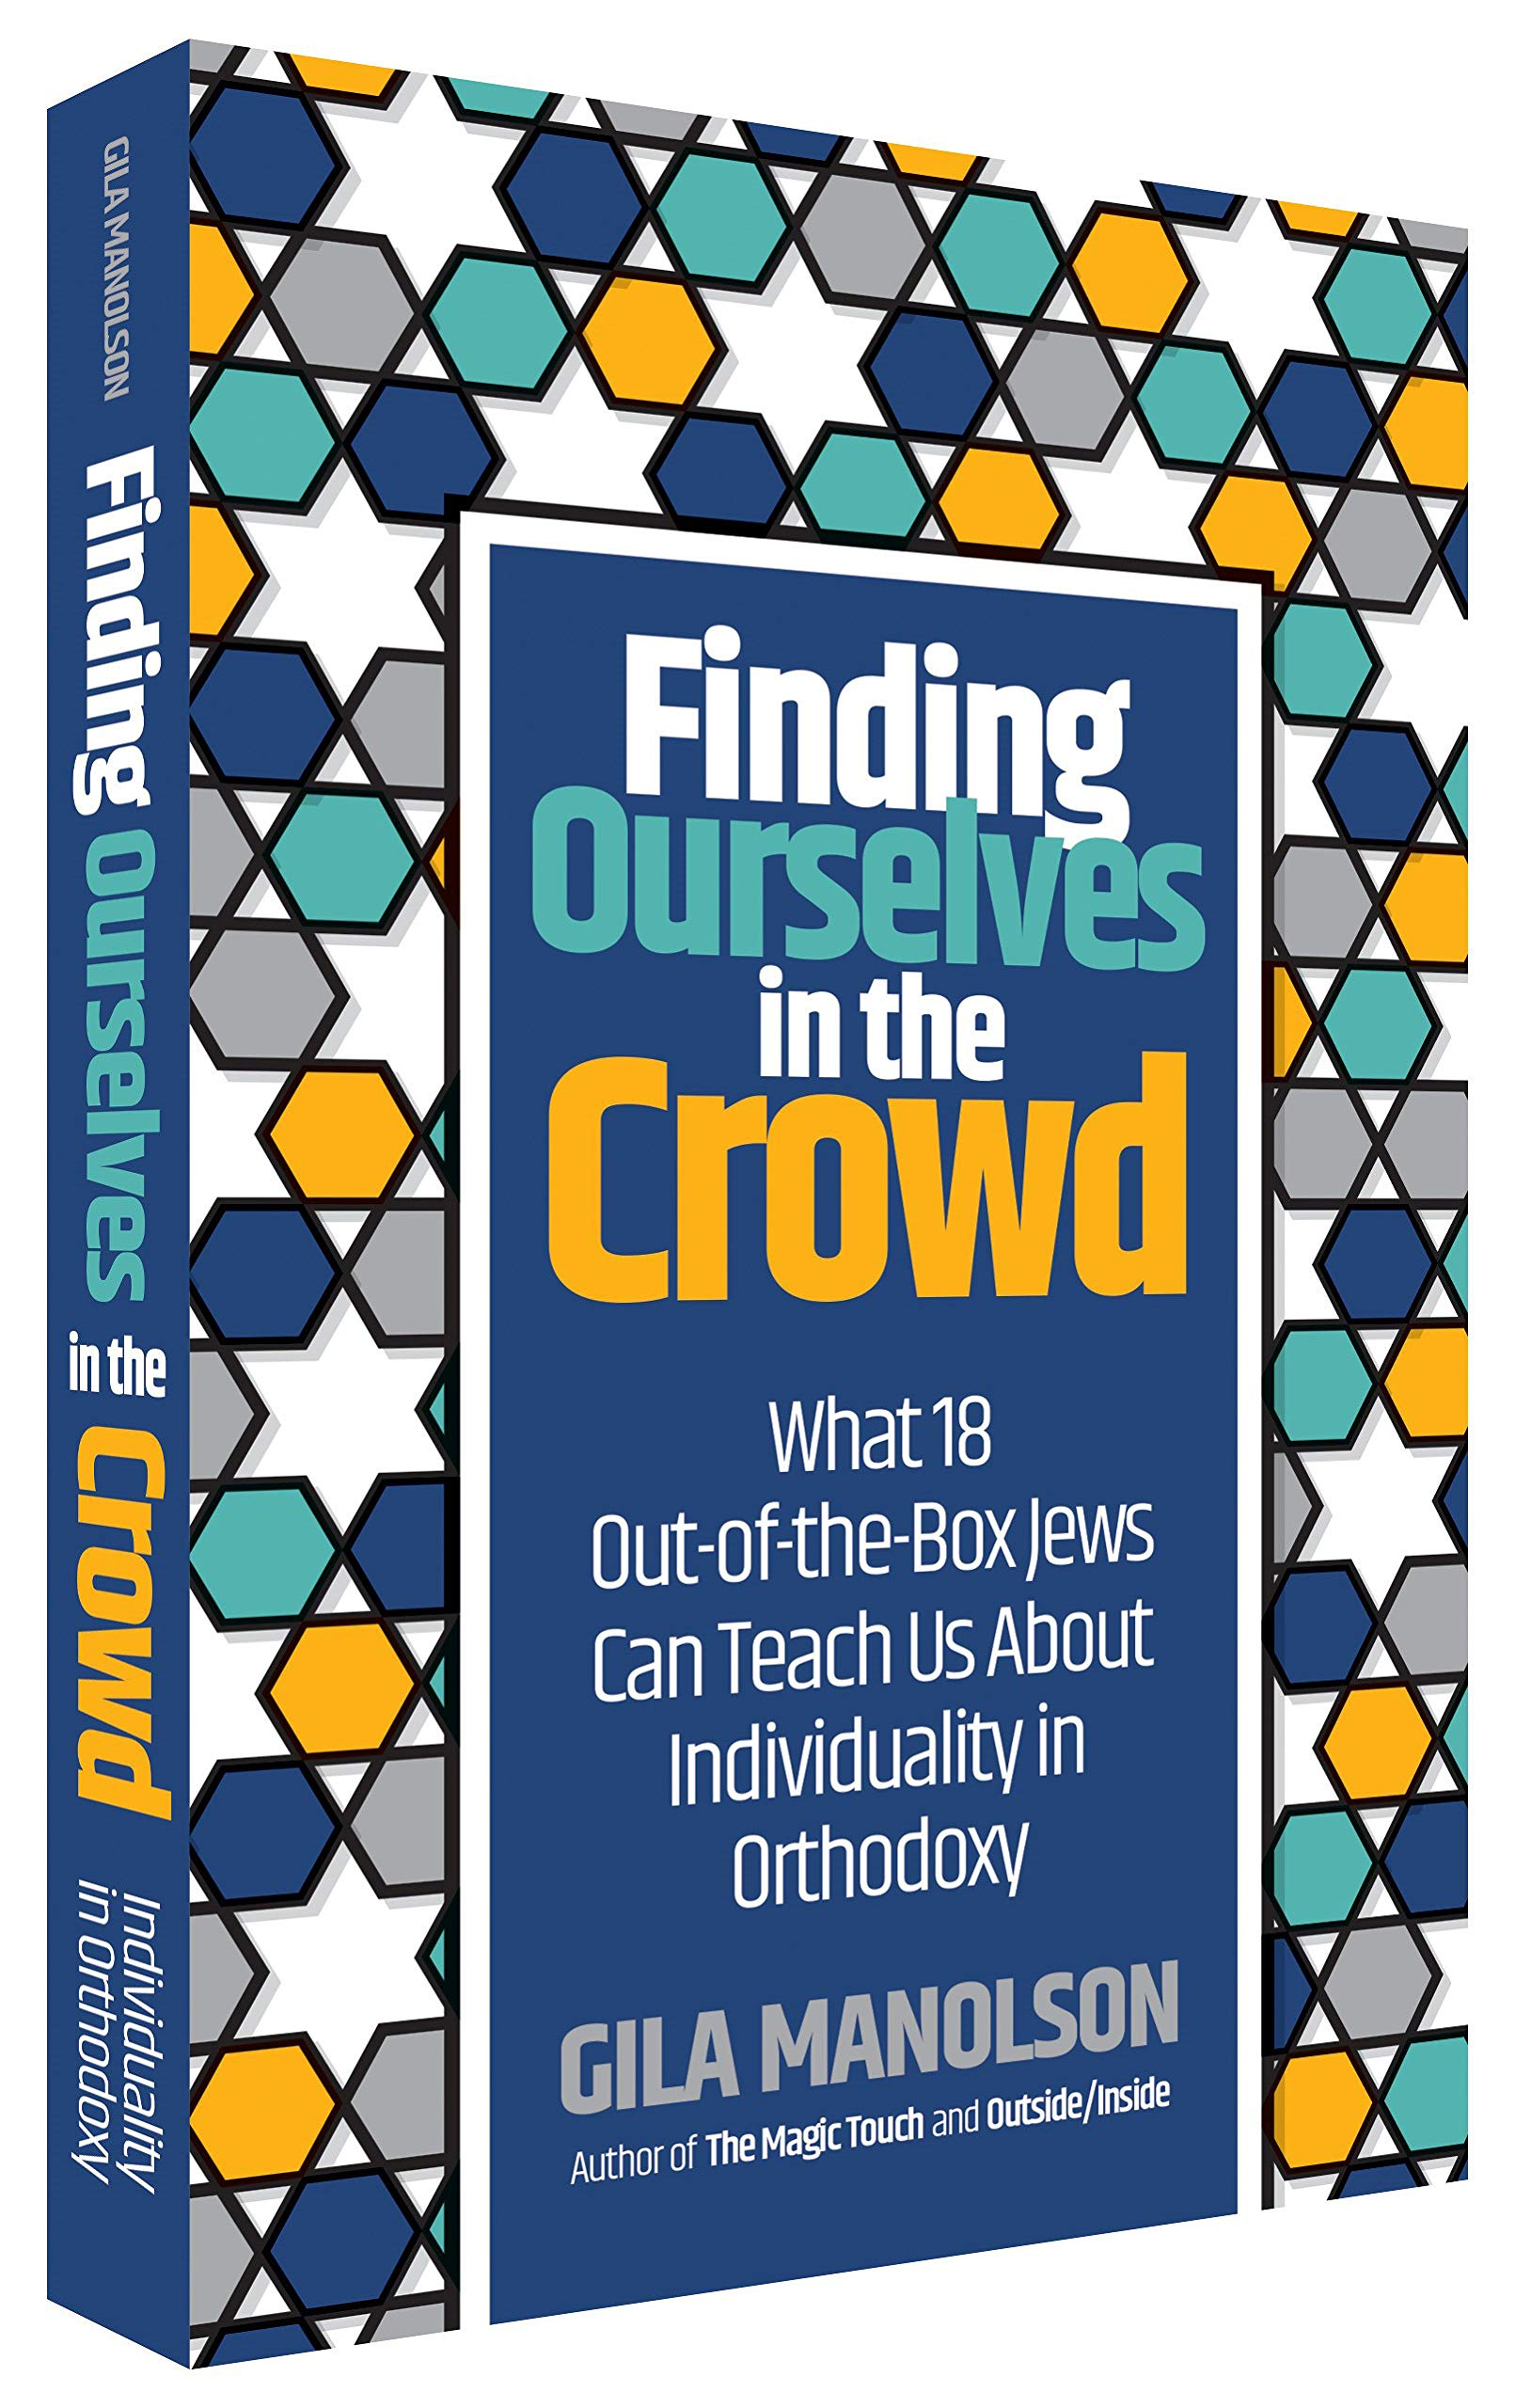 Finding Ourselves In The Crowd by: Gila Manolson